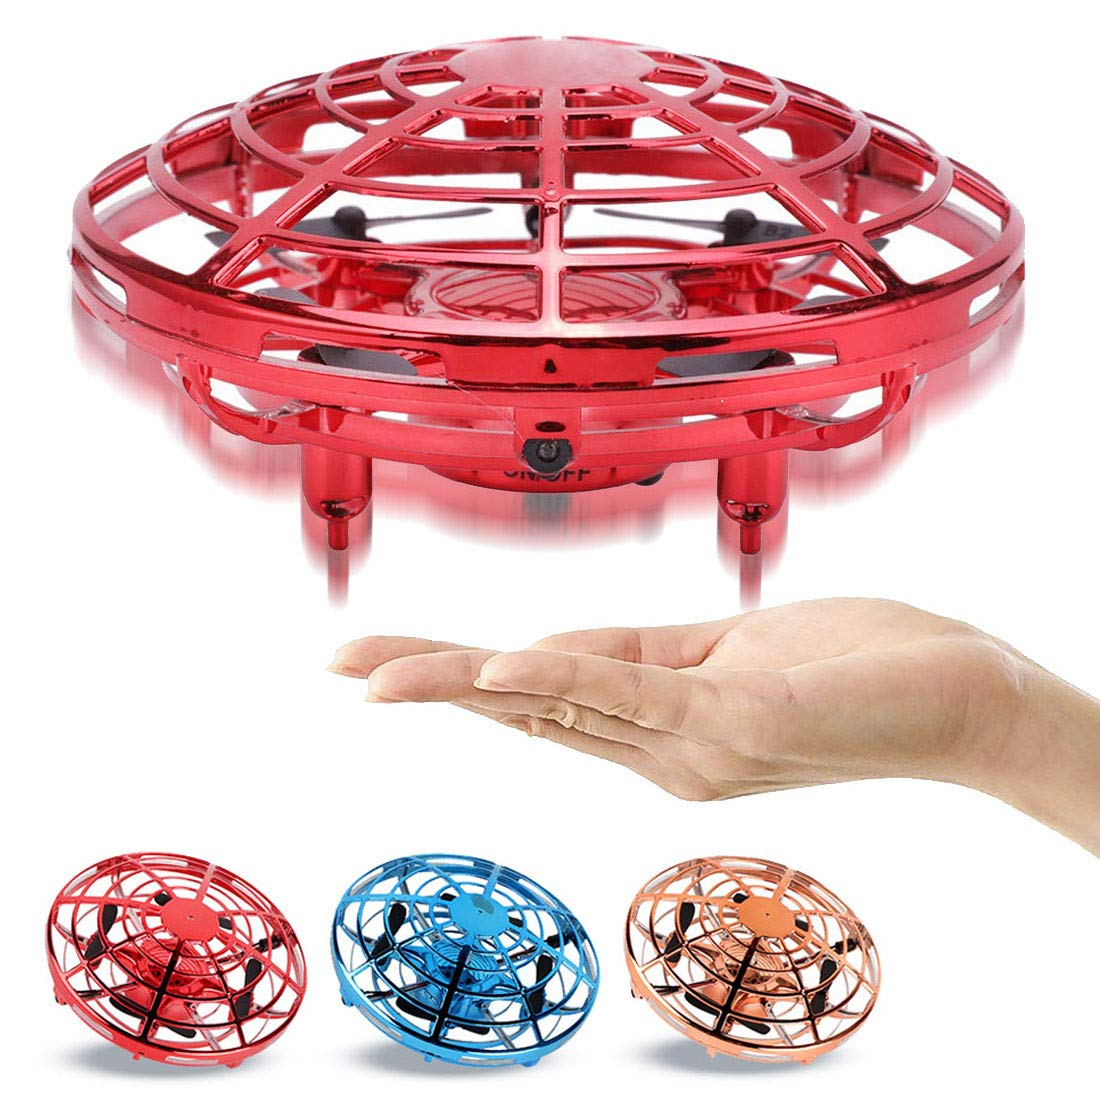 AURISON Flying Ball Drones, Hand-Controlled Drone Quadcopter Flying Toys Interactive Infrared Induction Helicopter Ball with 360°Rotating and Flashing LED Lights for Kids or Adults Gifts(Red) by AURISON (Image #2)